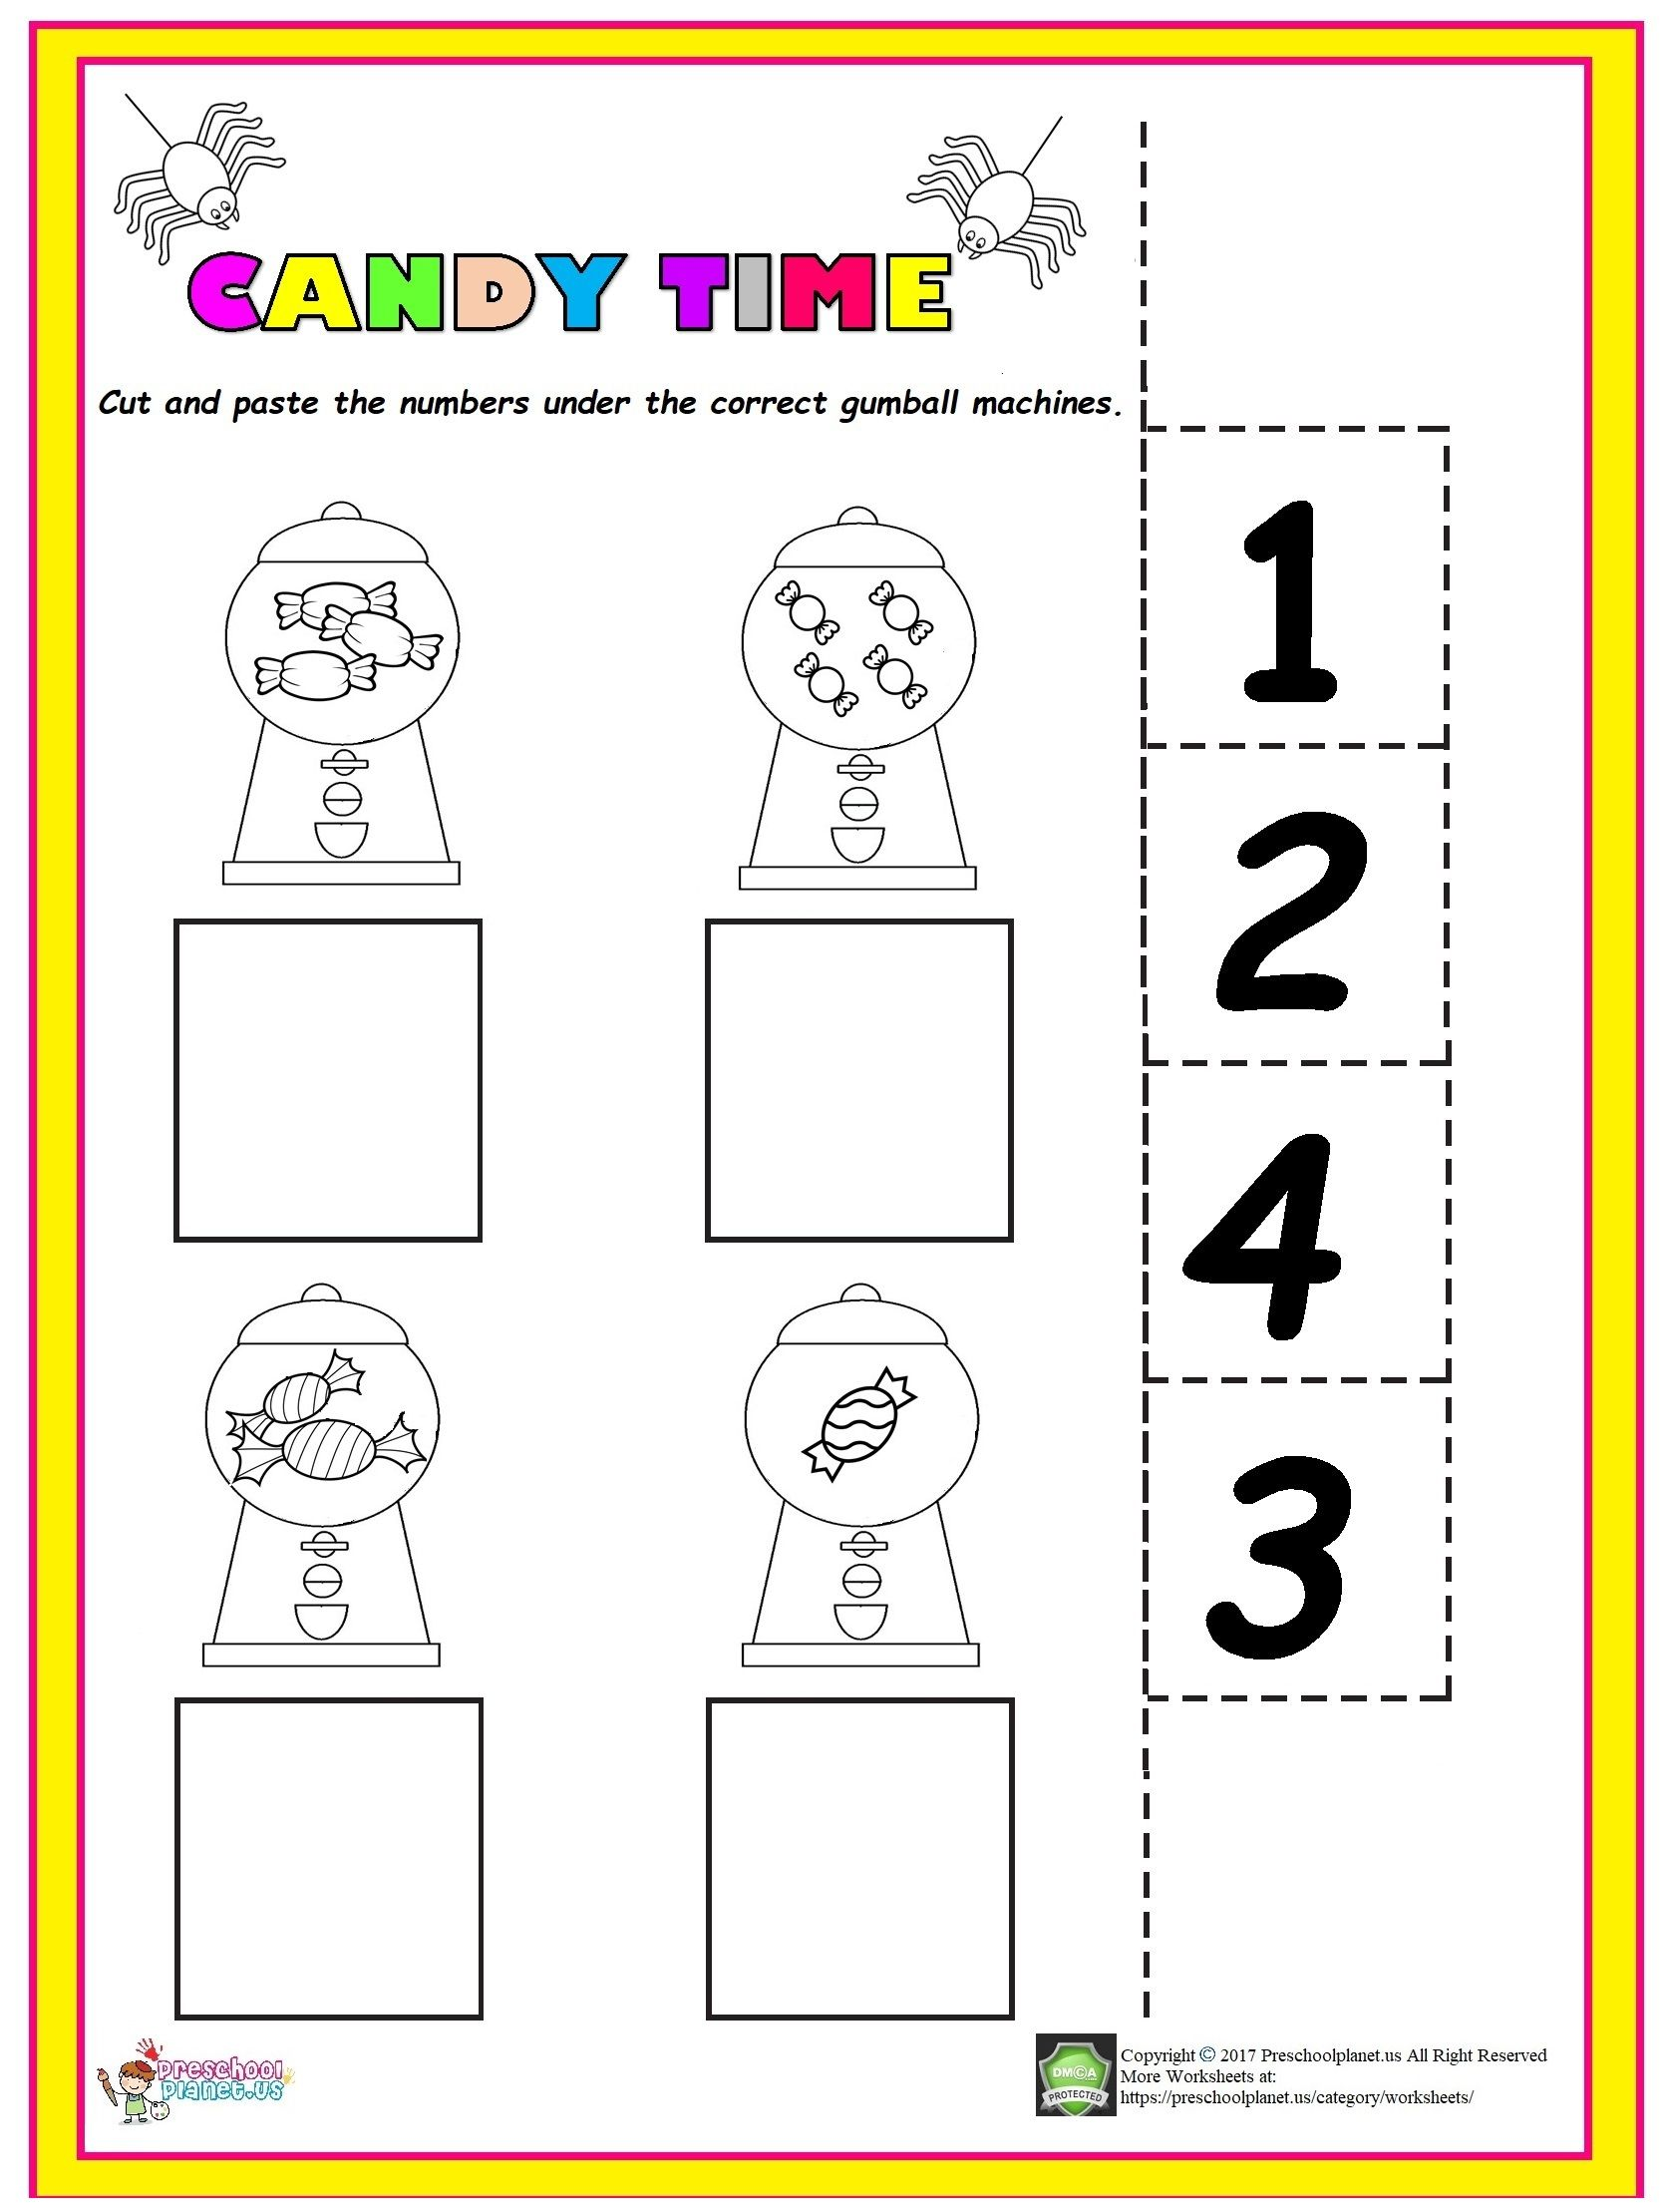 Easy Candy Counting Worksheet | Worksheet for kids ...